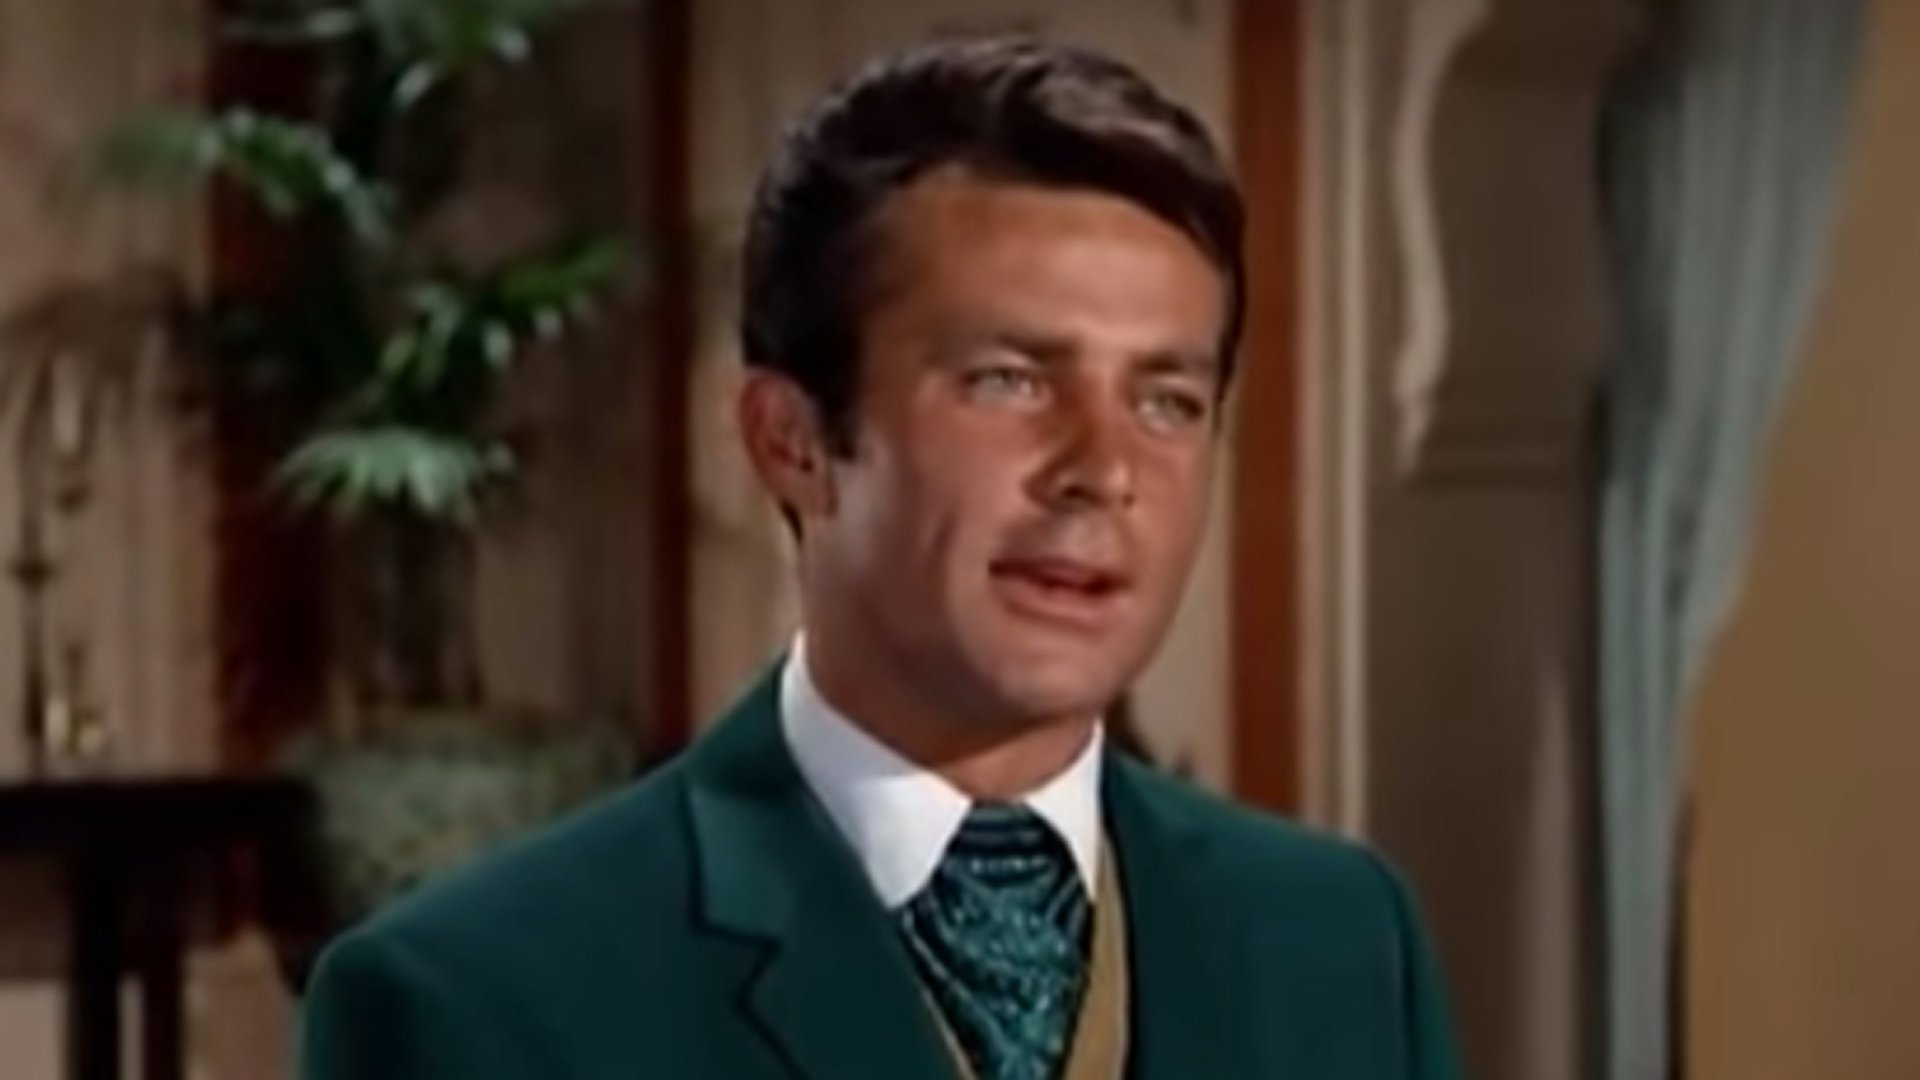 """Robert Conrad appears in a still from an episode of """"The Wild, Wild West."""" (Credit: CBS Productions)"""